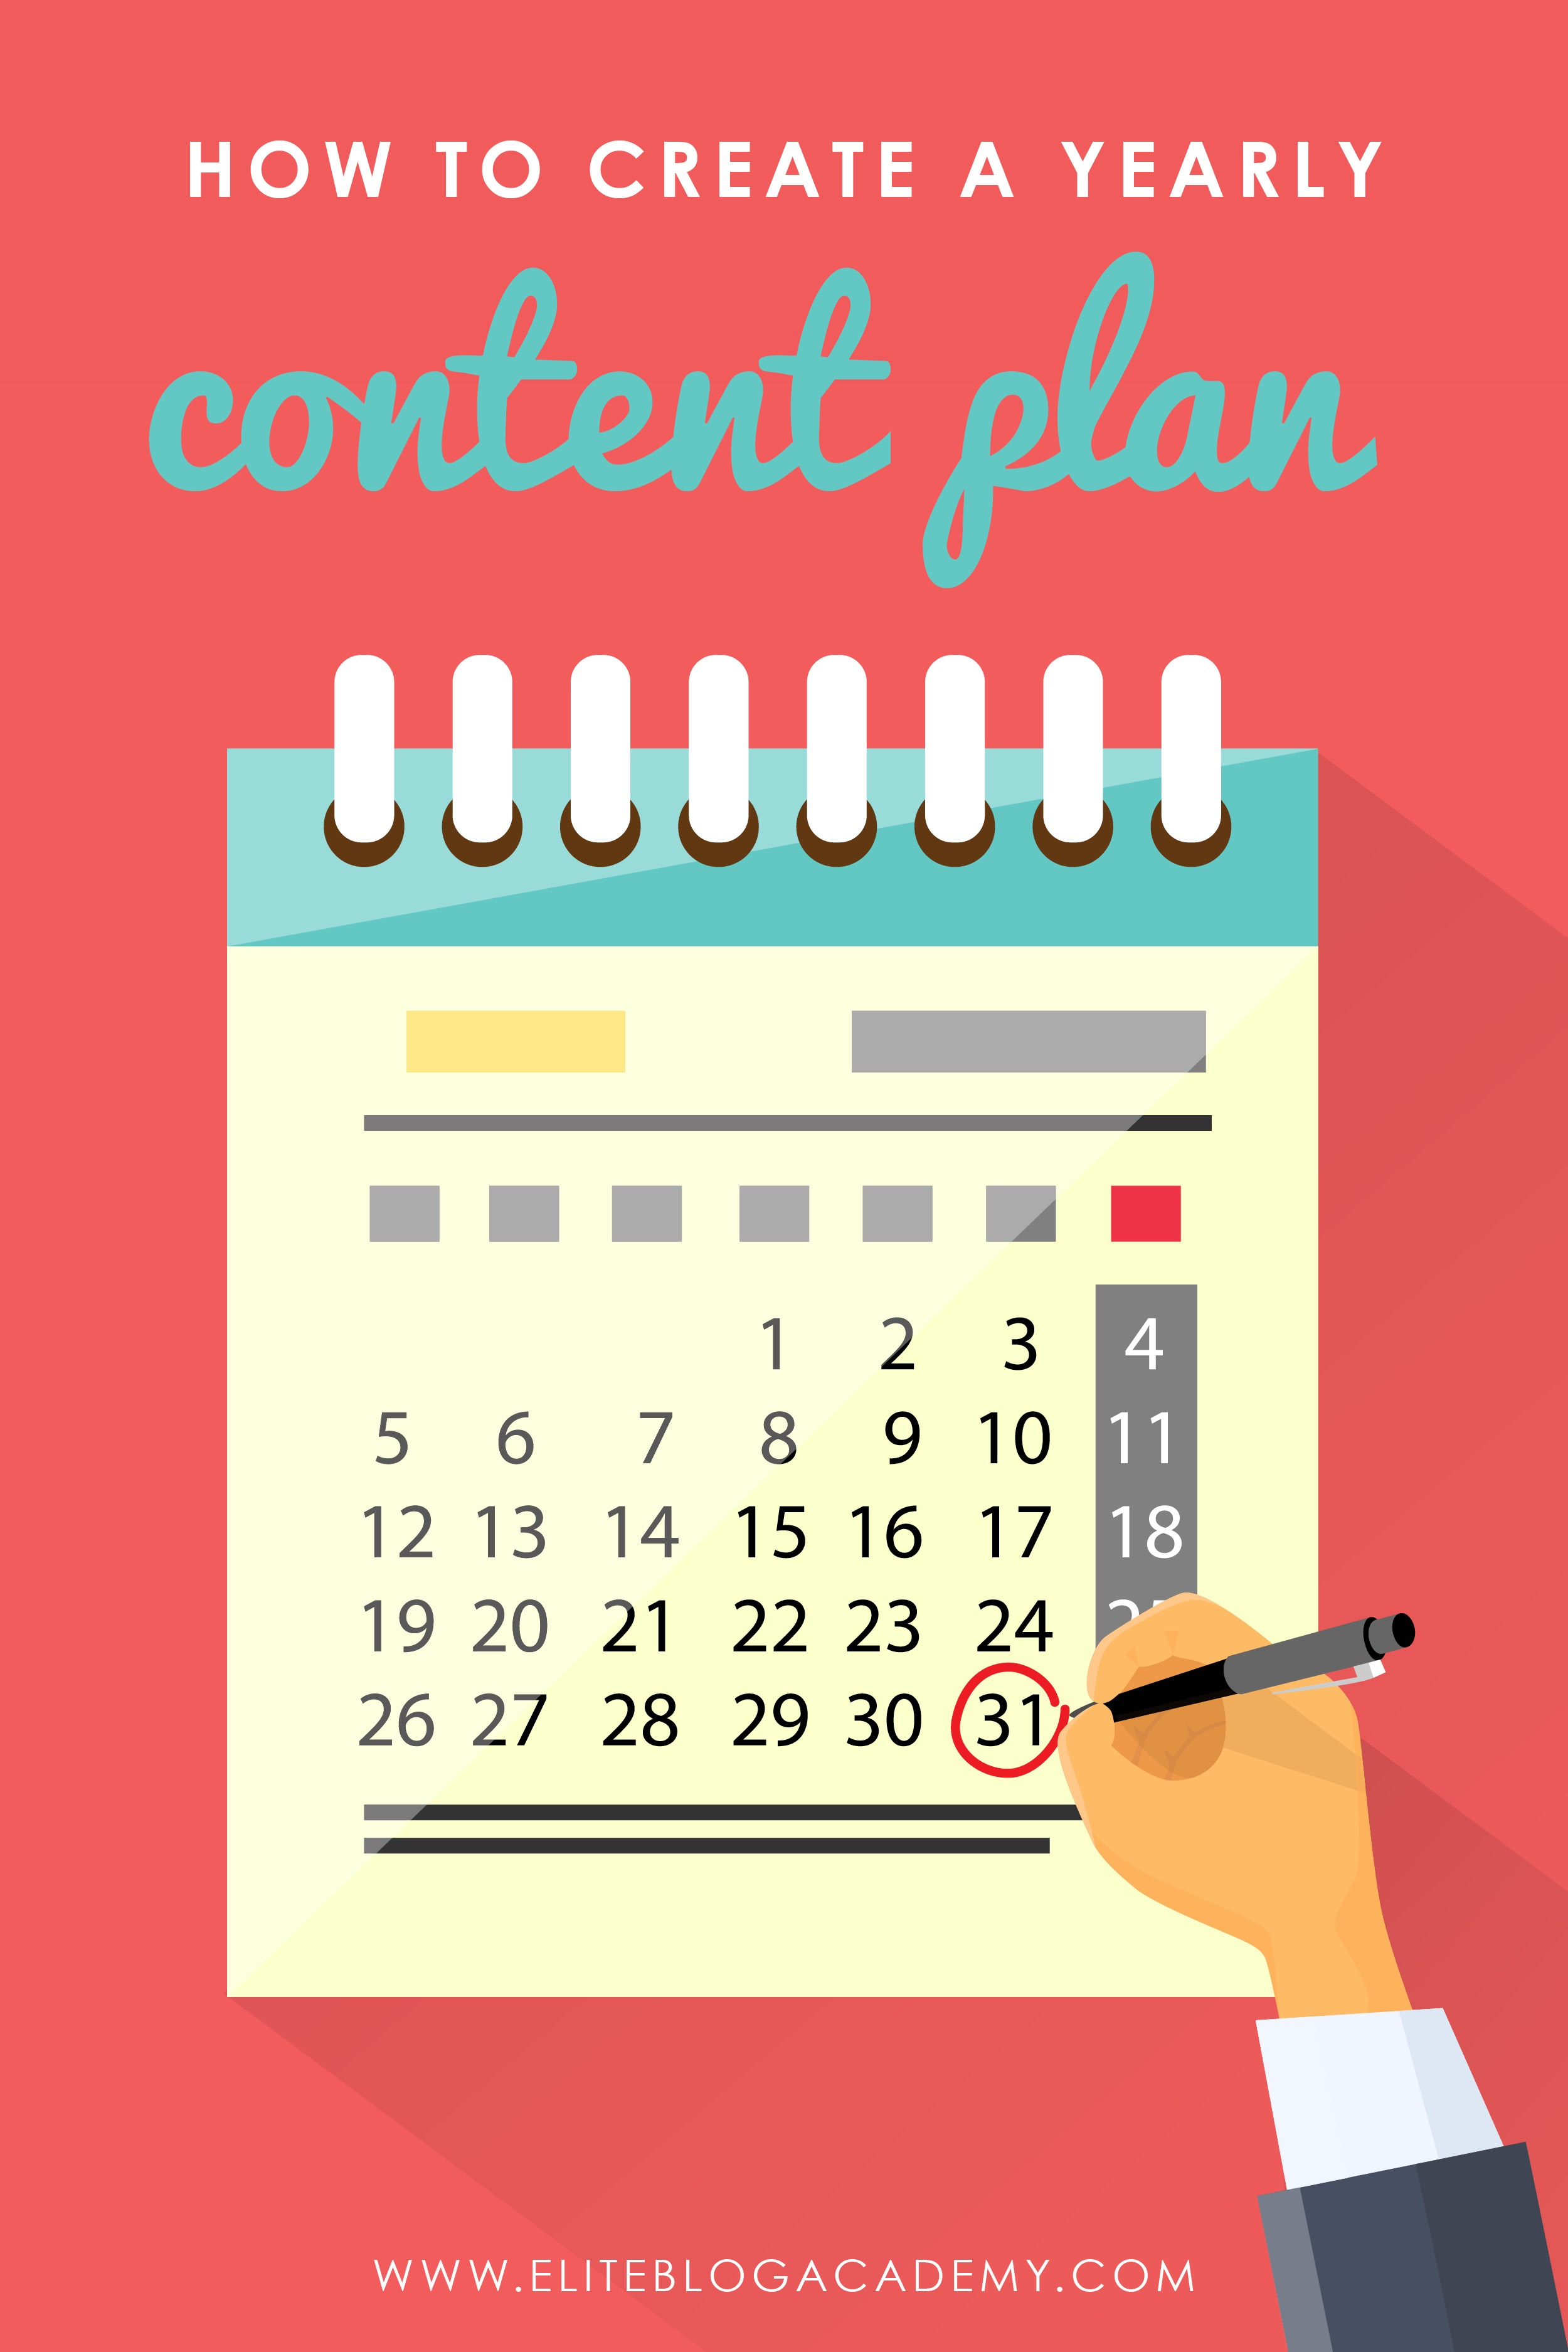 EBA_Yearly Content Plan_Vertical